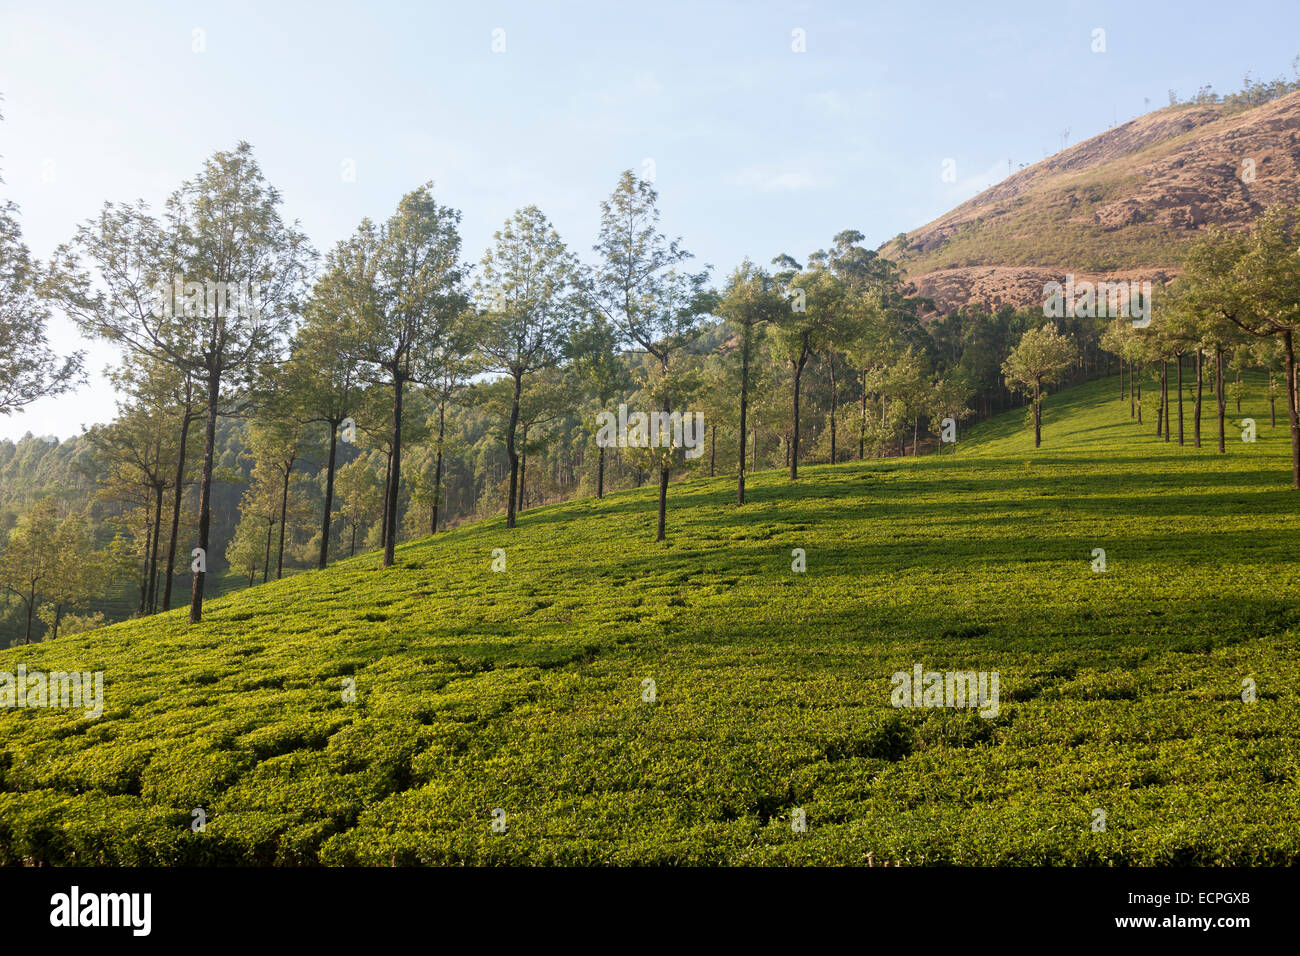 Munnar is a town and hill station located in the Idukki district of the southwestern Indian state of Kerala. - Stock Image